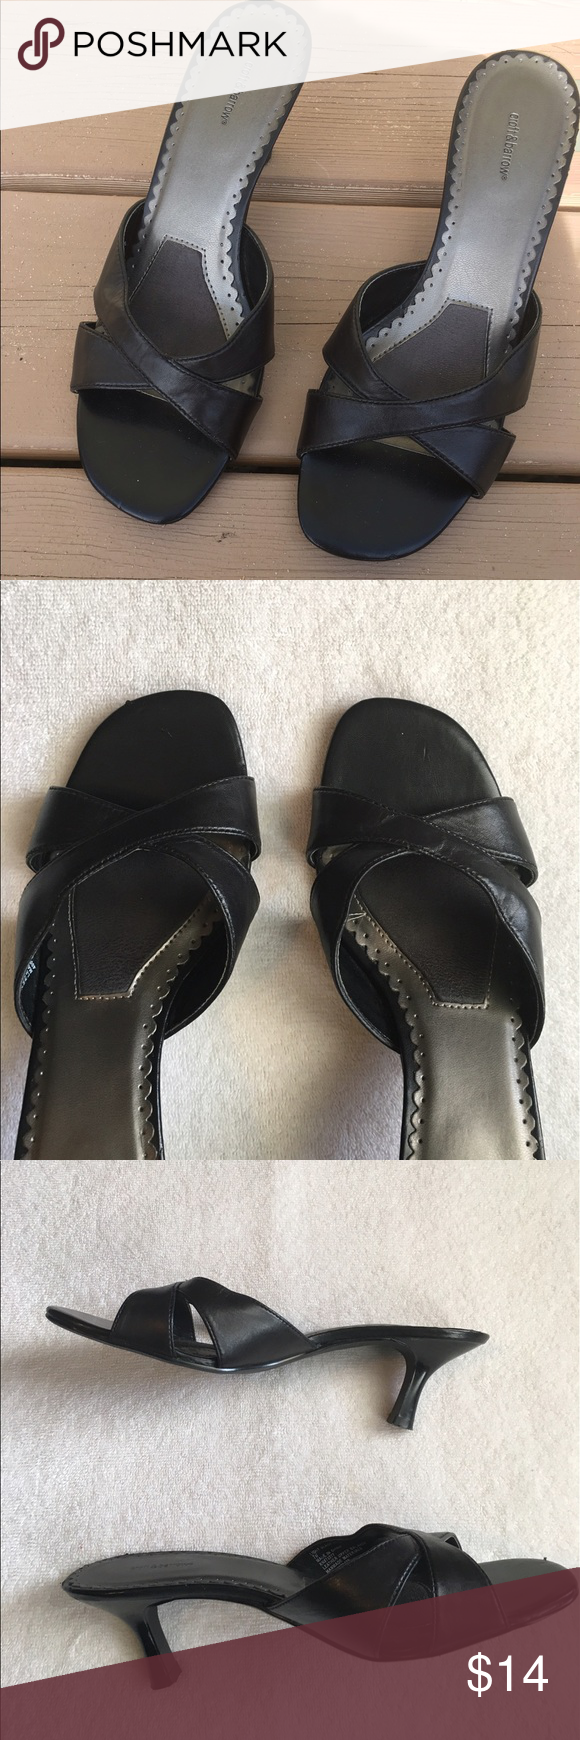 Black sandals size 7 - Black Sandals Size 7 Wide Good Used Condition No Box 2 1